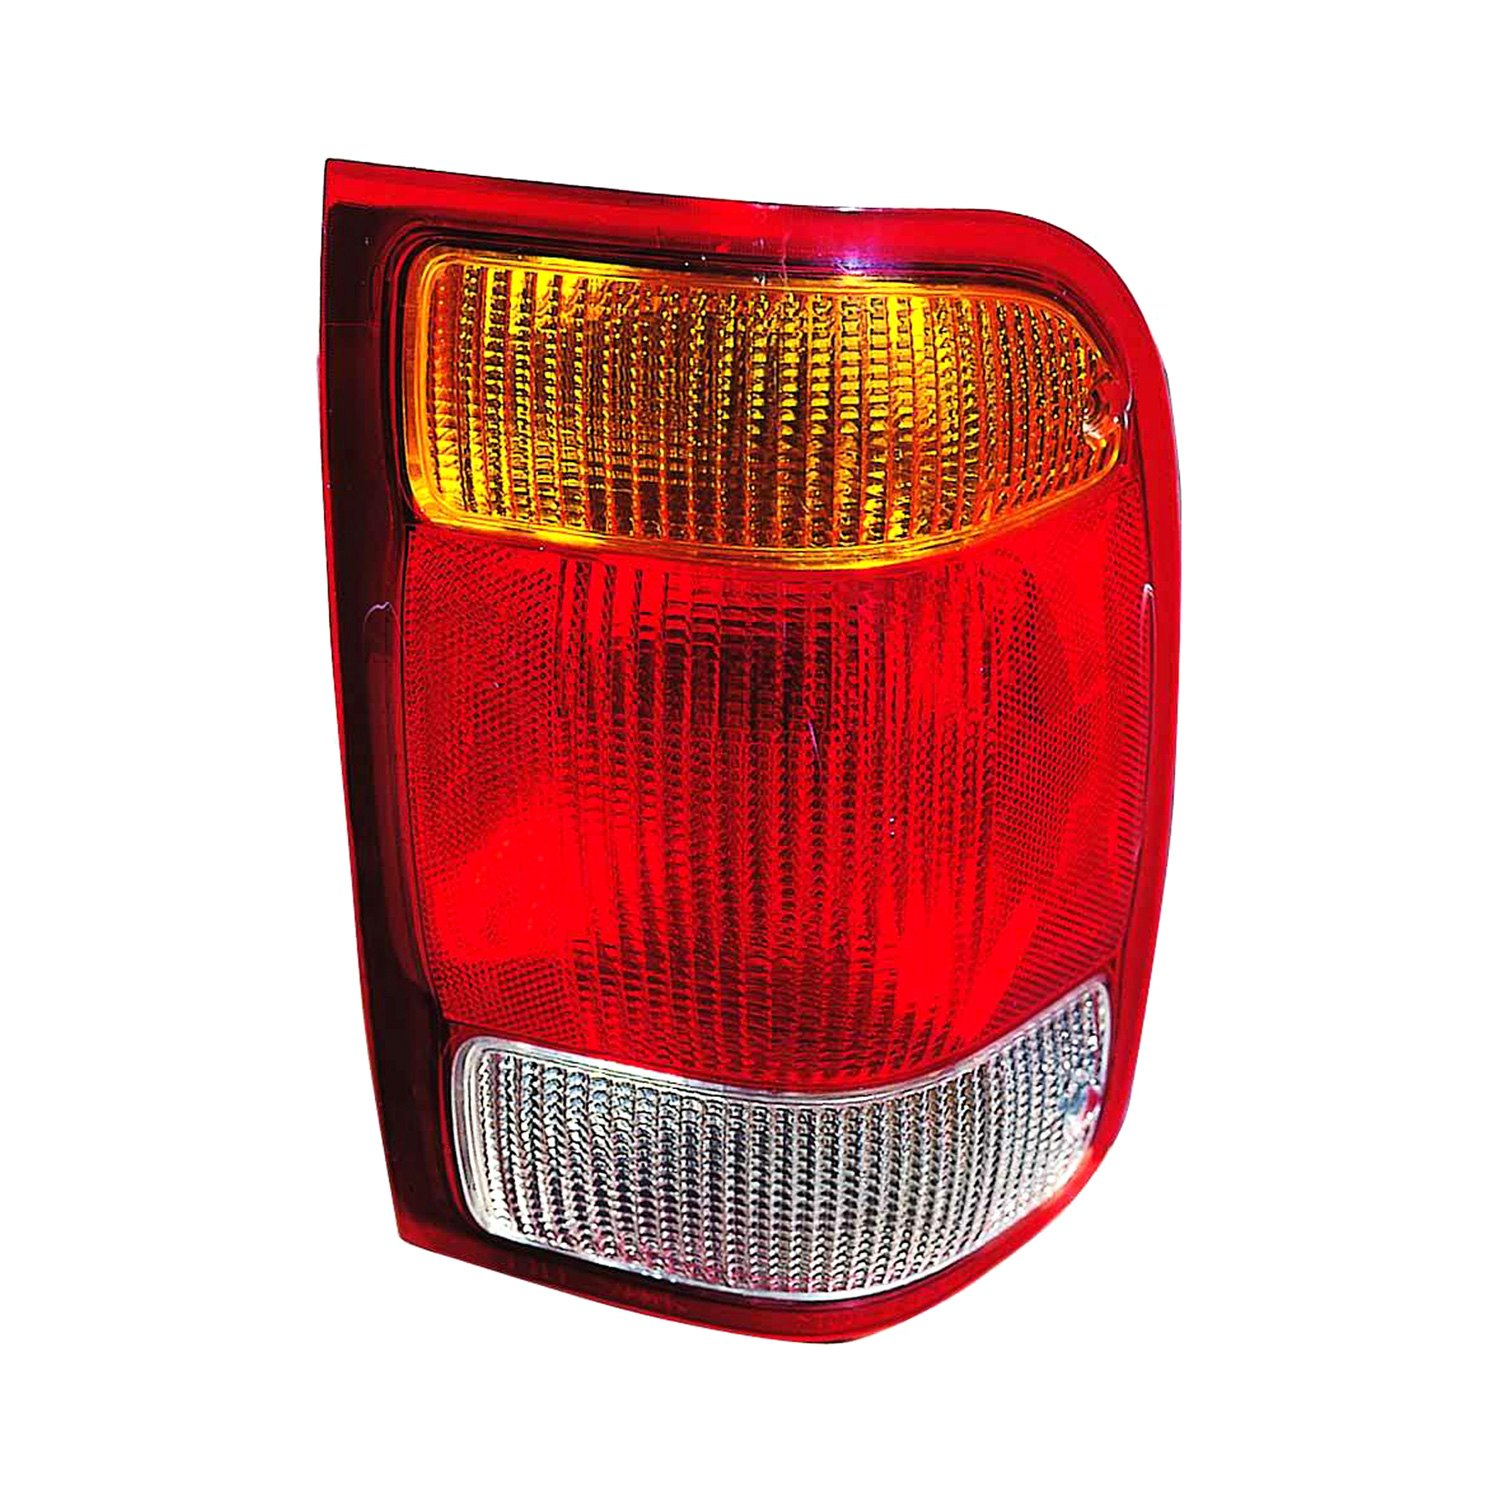 Tail Light Lens Replacement : Replace fo c passenger side replacement tail